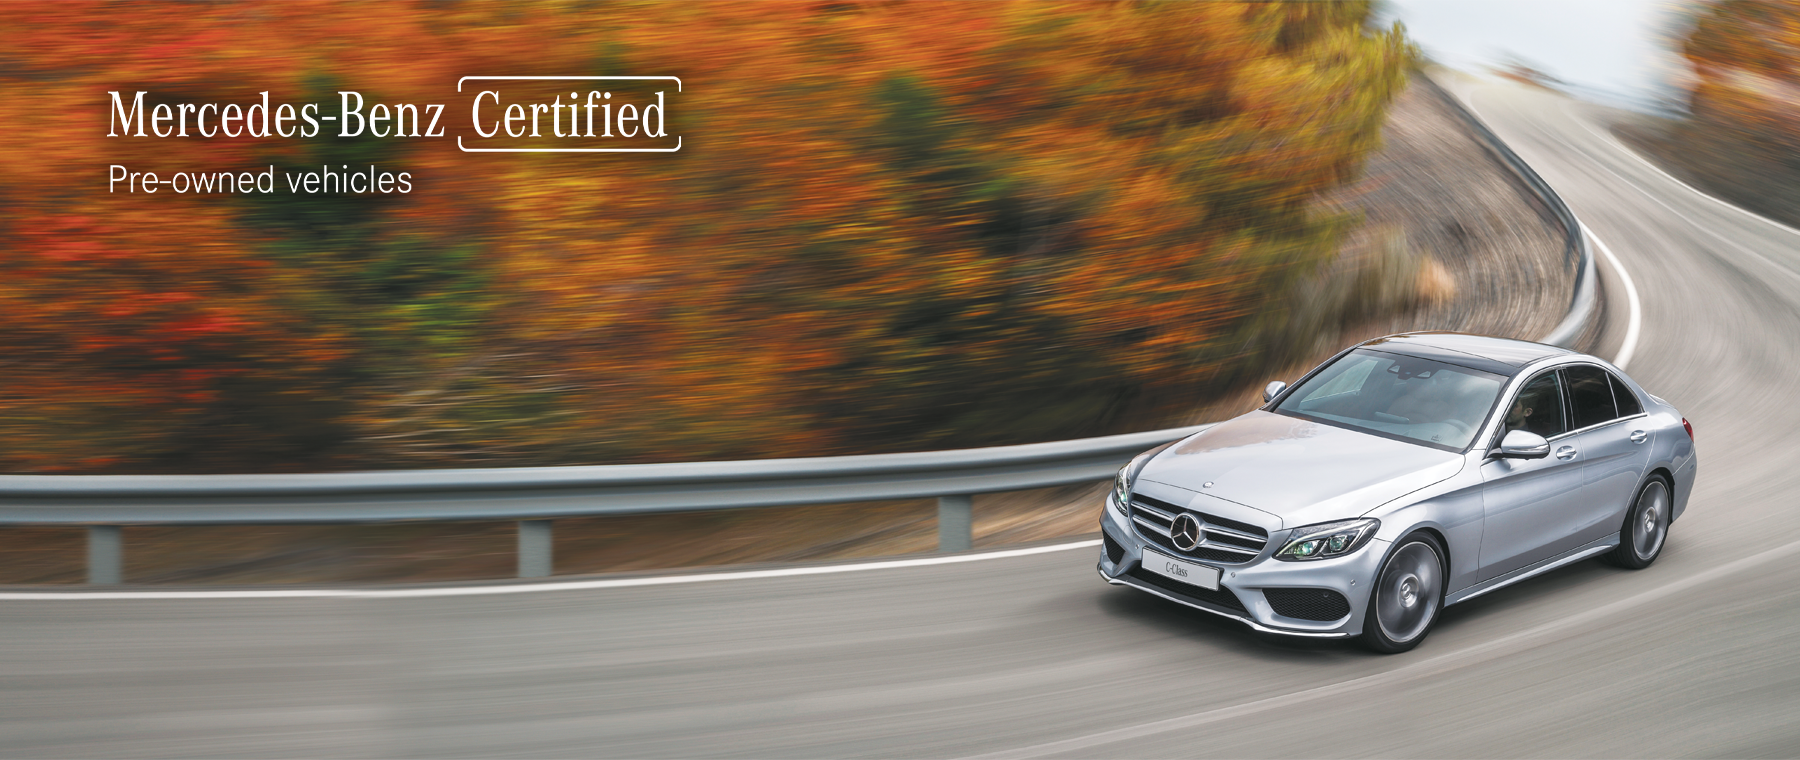 November Certified Pre-Owned Vehicles at Mercedes-Benz